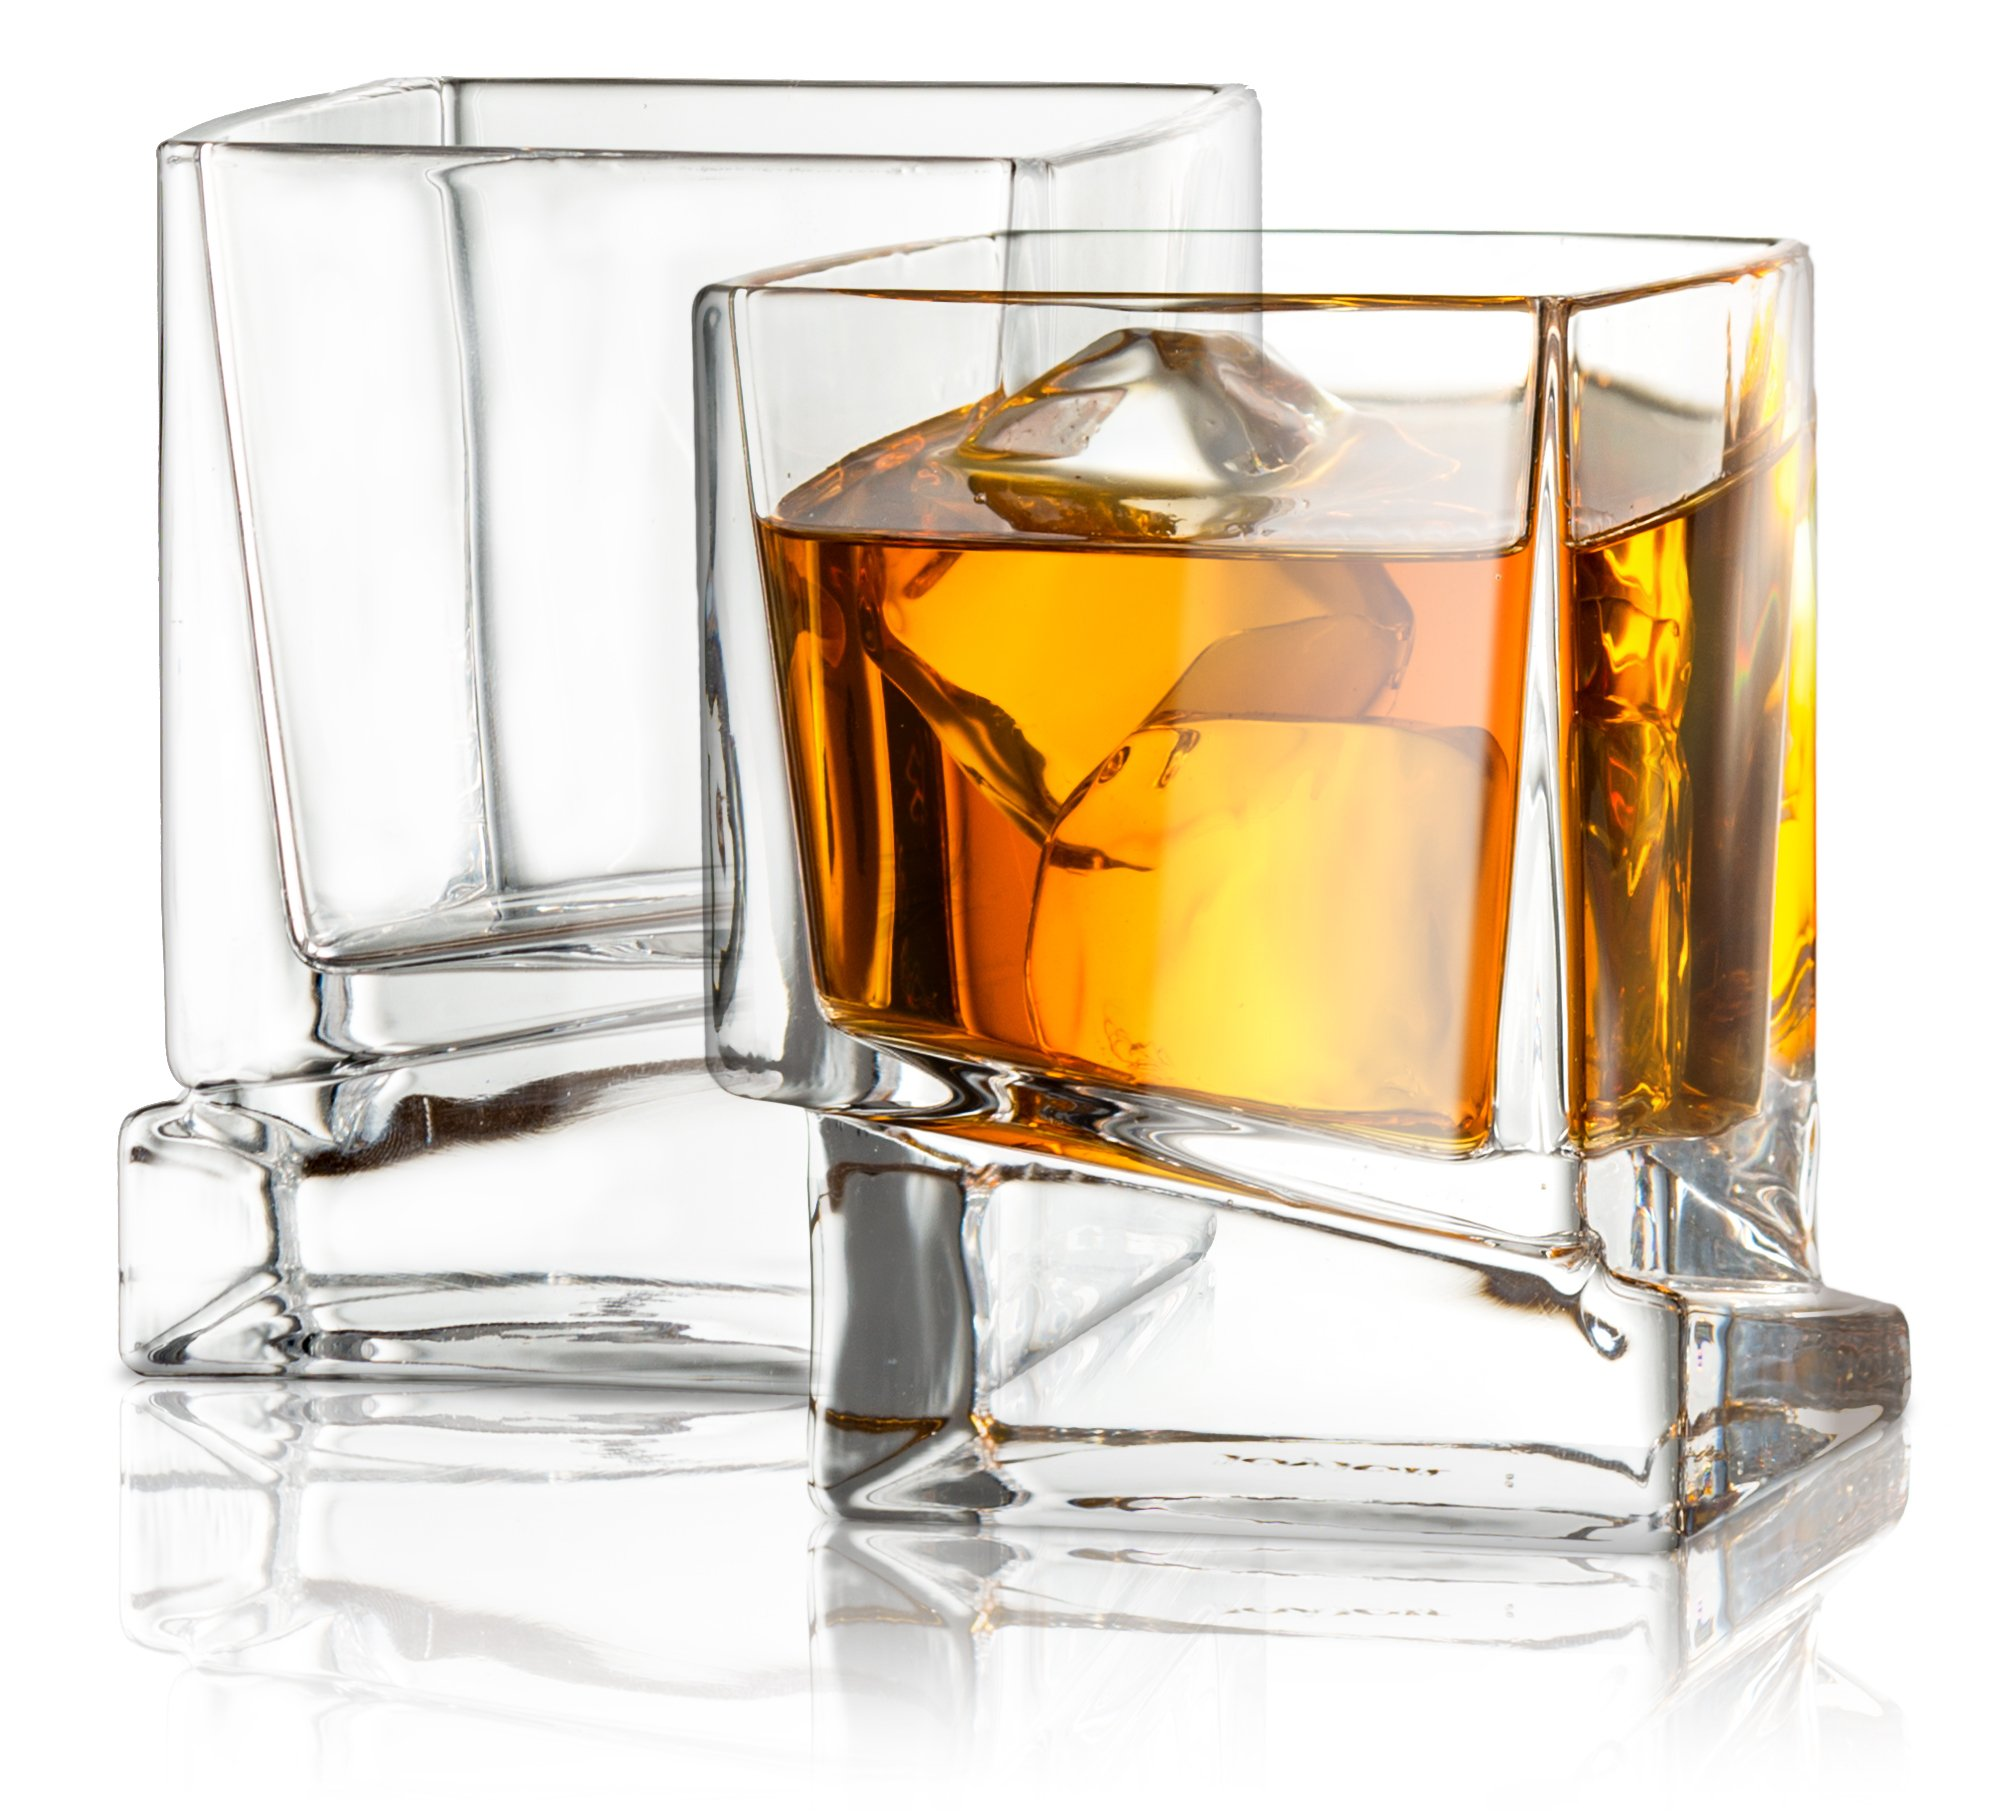 JoyJolt Carre Square Scotch Glasses, Old Fashioned Whiskey Glasses 10-Ounce, Ultra Clear Whiskey Glass for Bourbon and Liquor Set Of 2 Glassware